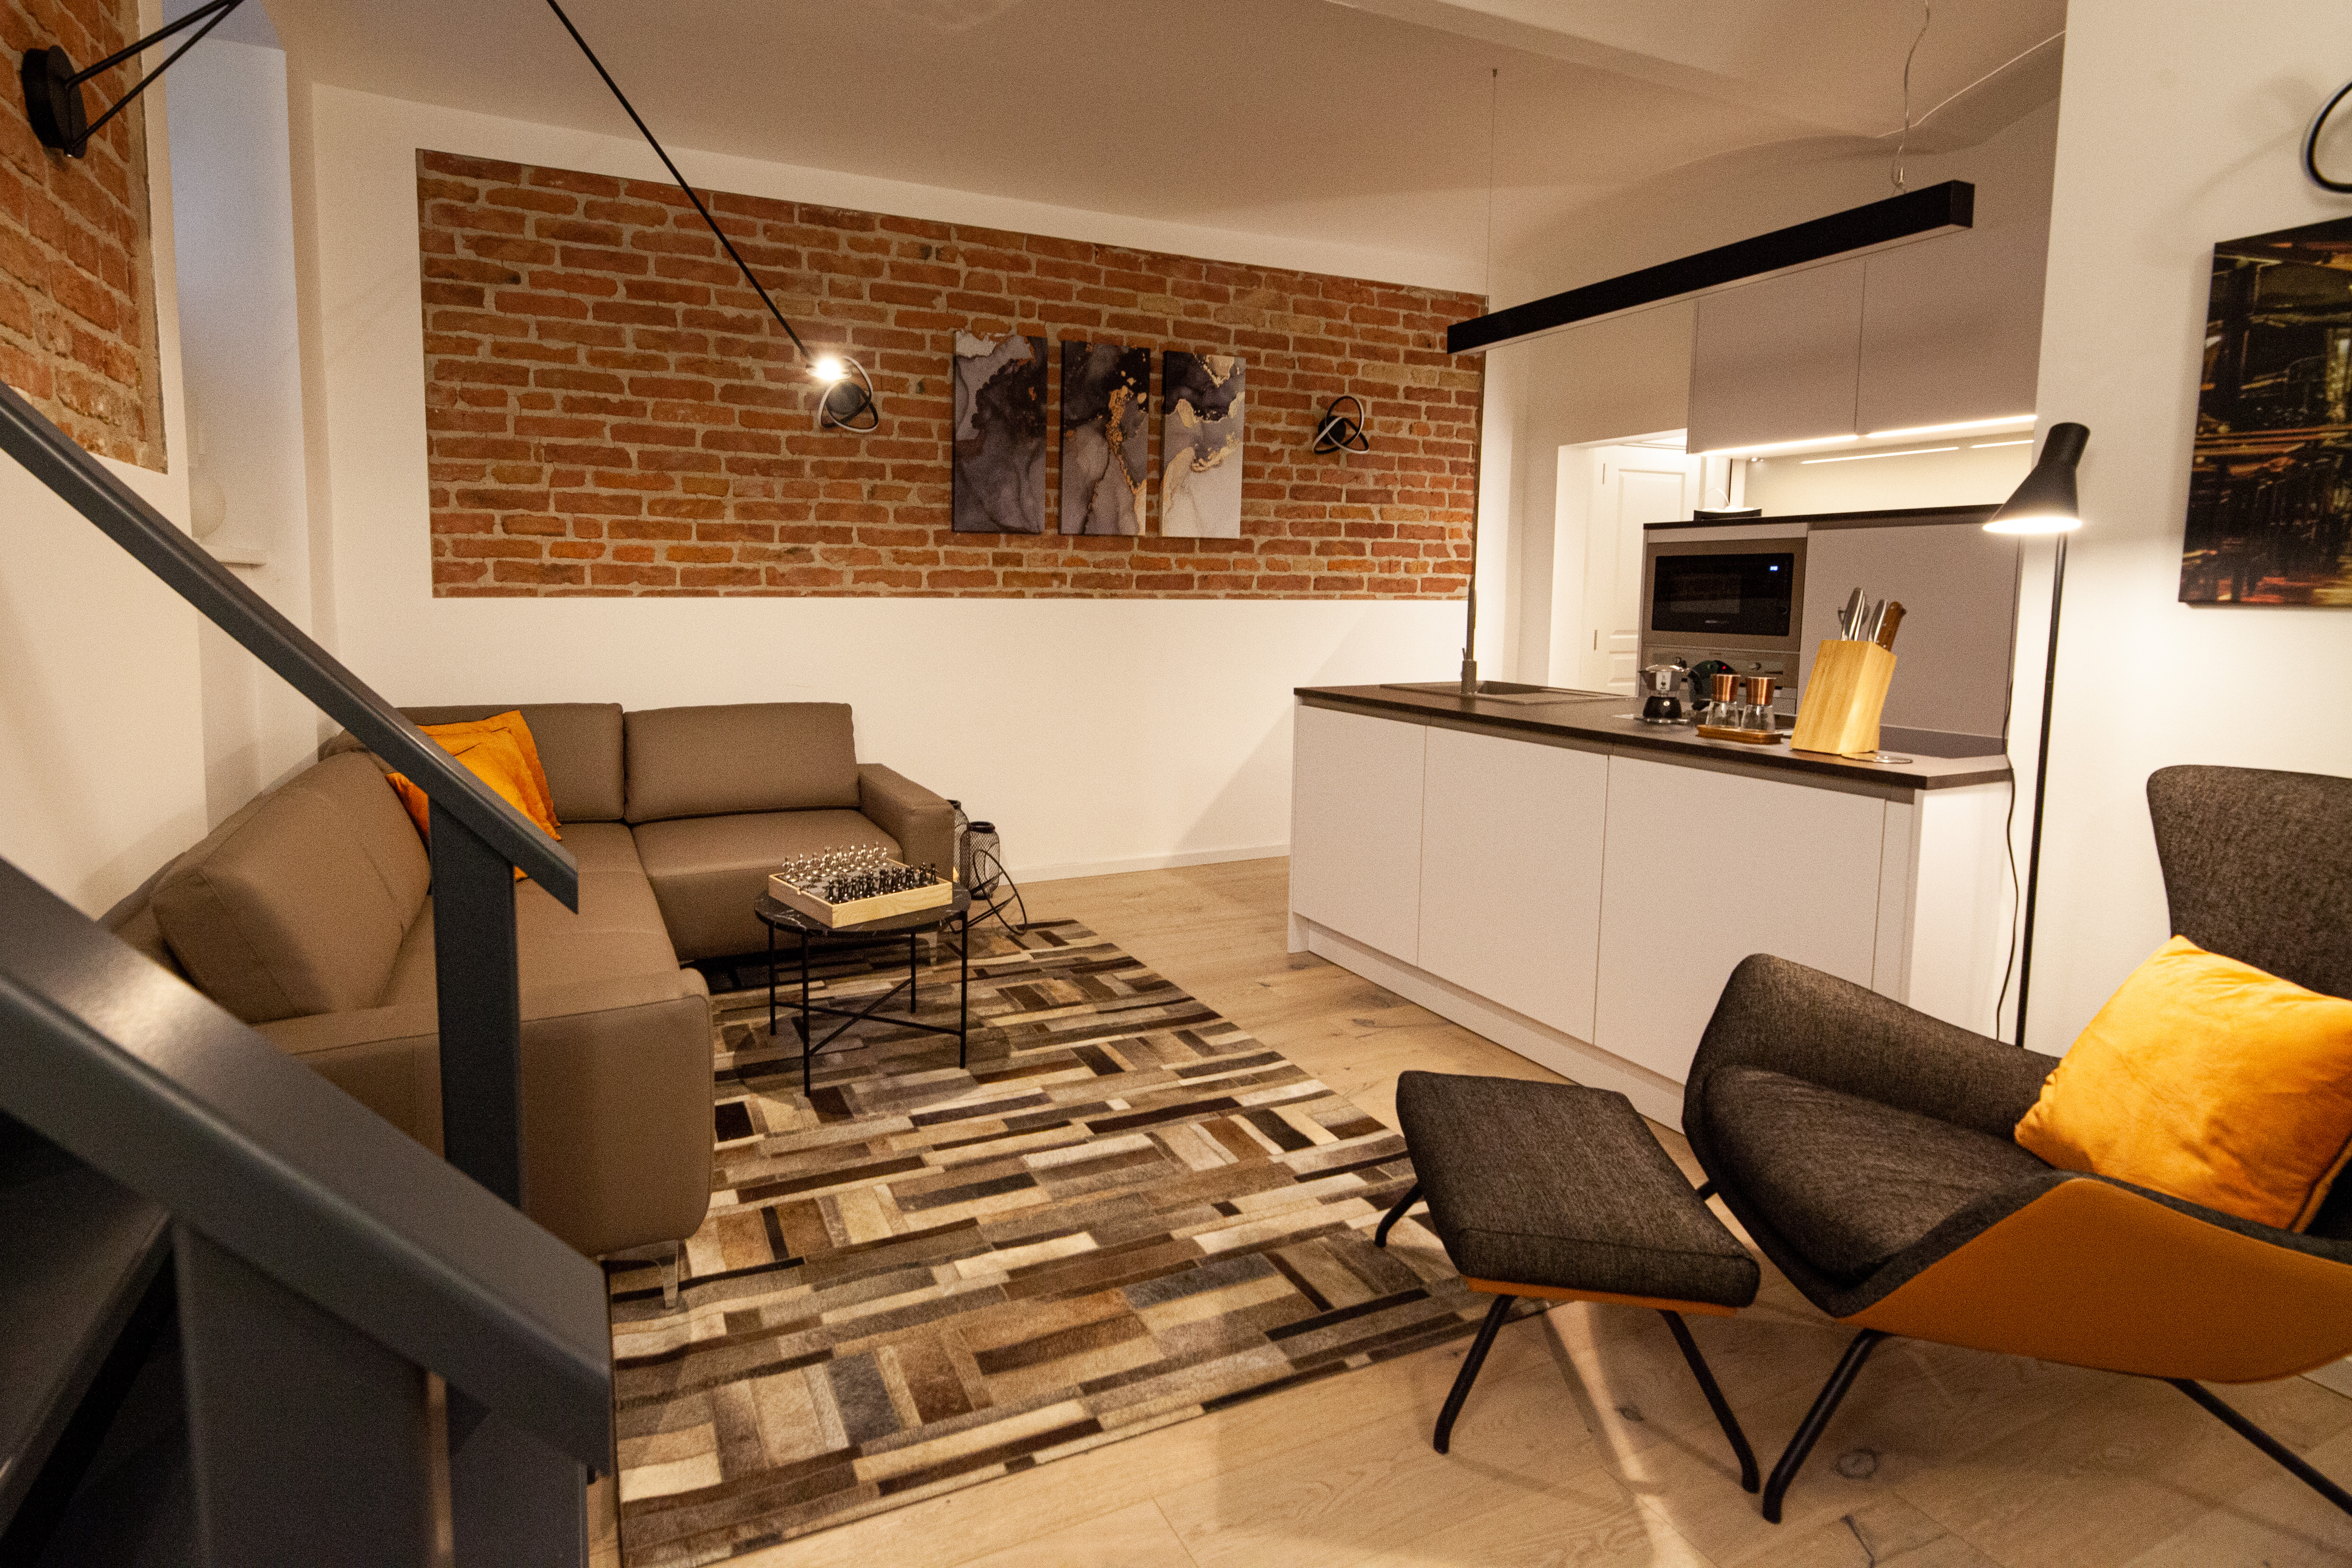 Modern Industrial Bachelor'S Apartment